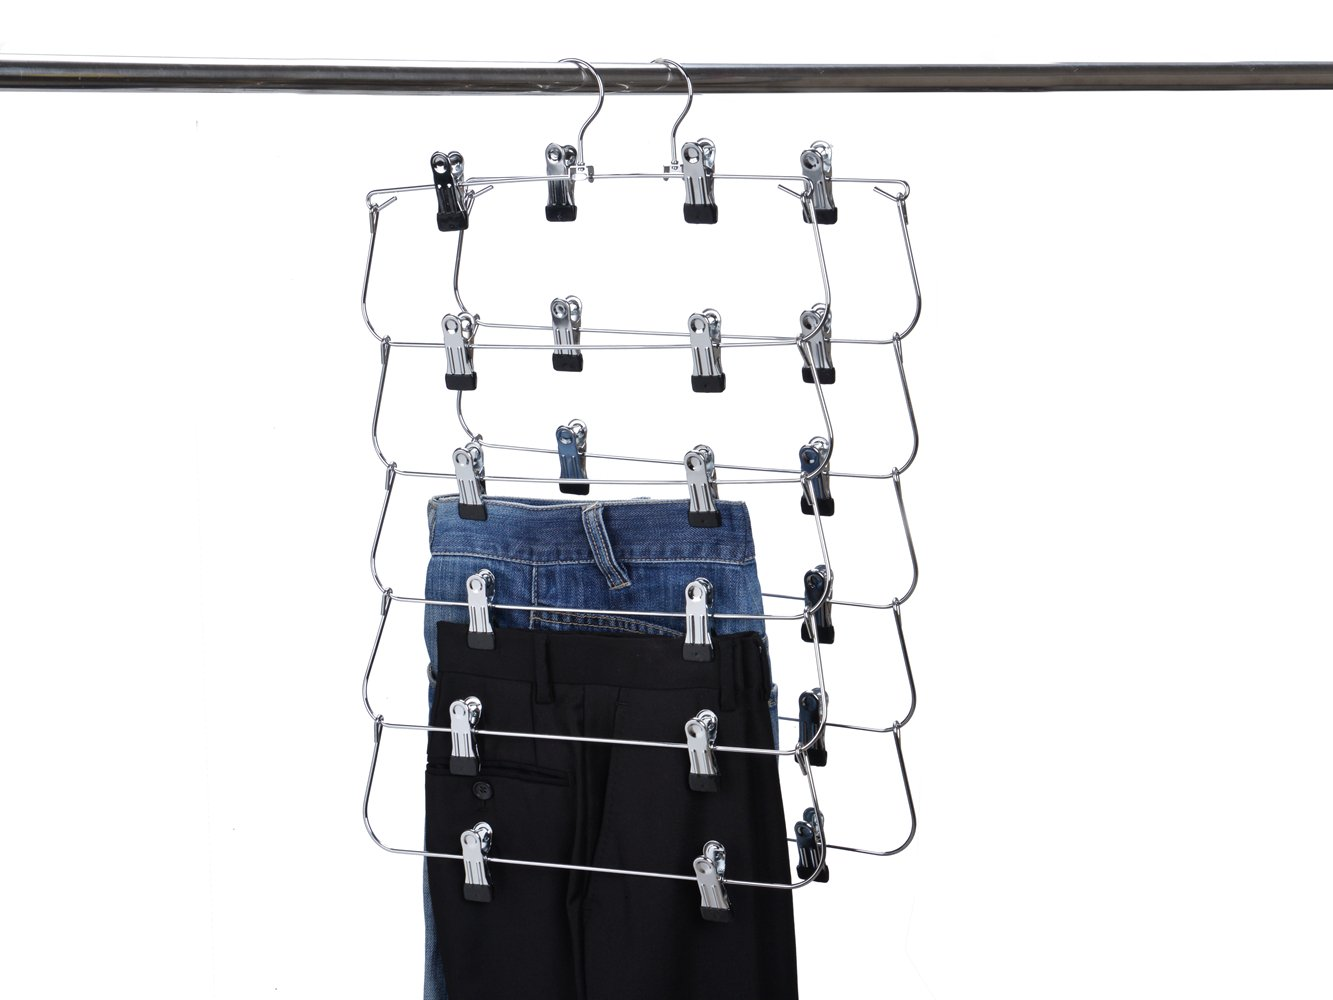 5 Quality Heavy Duty 6 Tier Skirt Pants Hanger Metal Foldable Organizer (5) by Quality Hangers